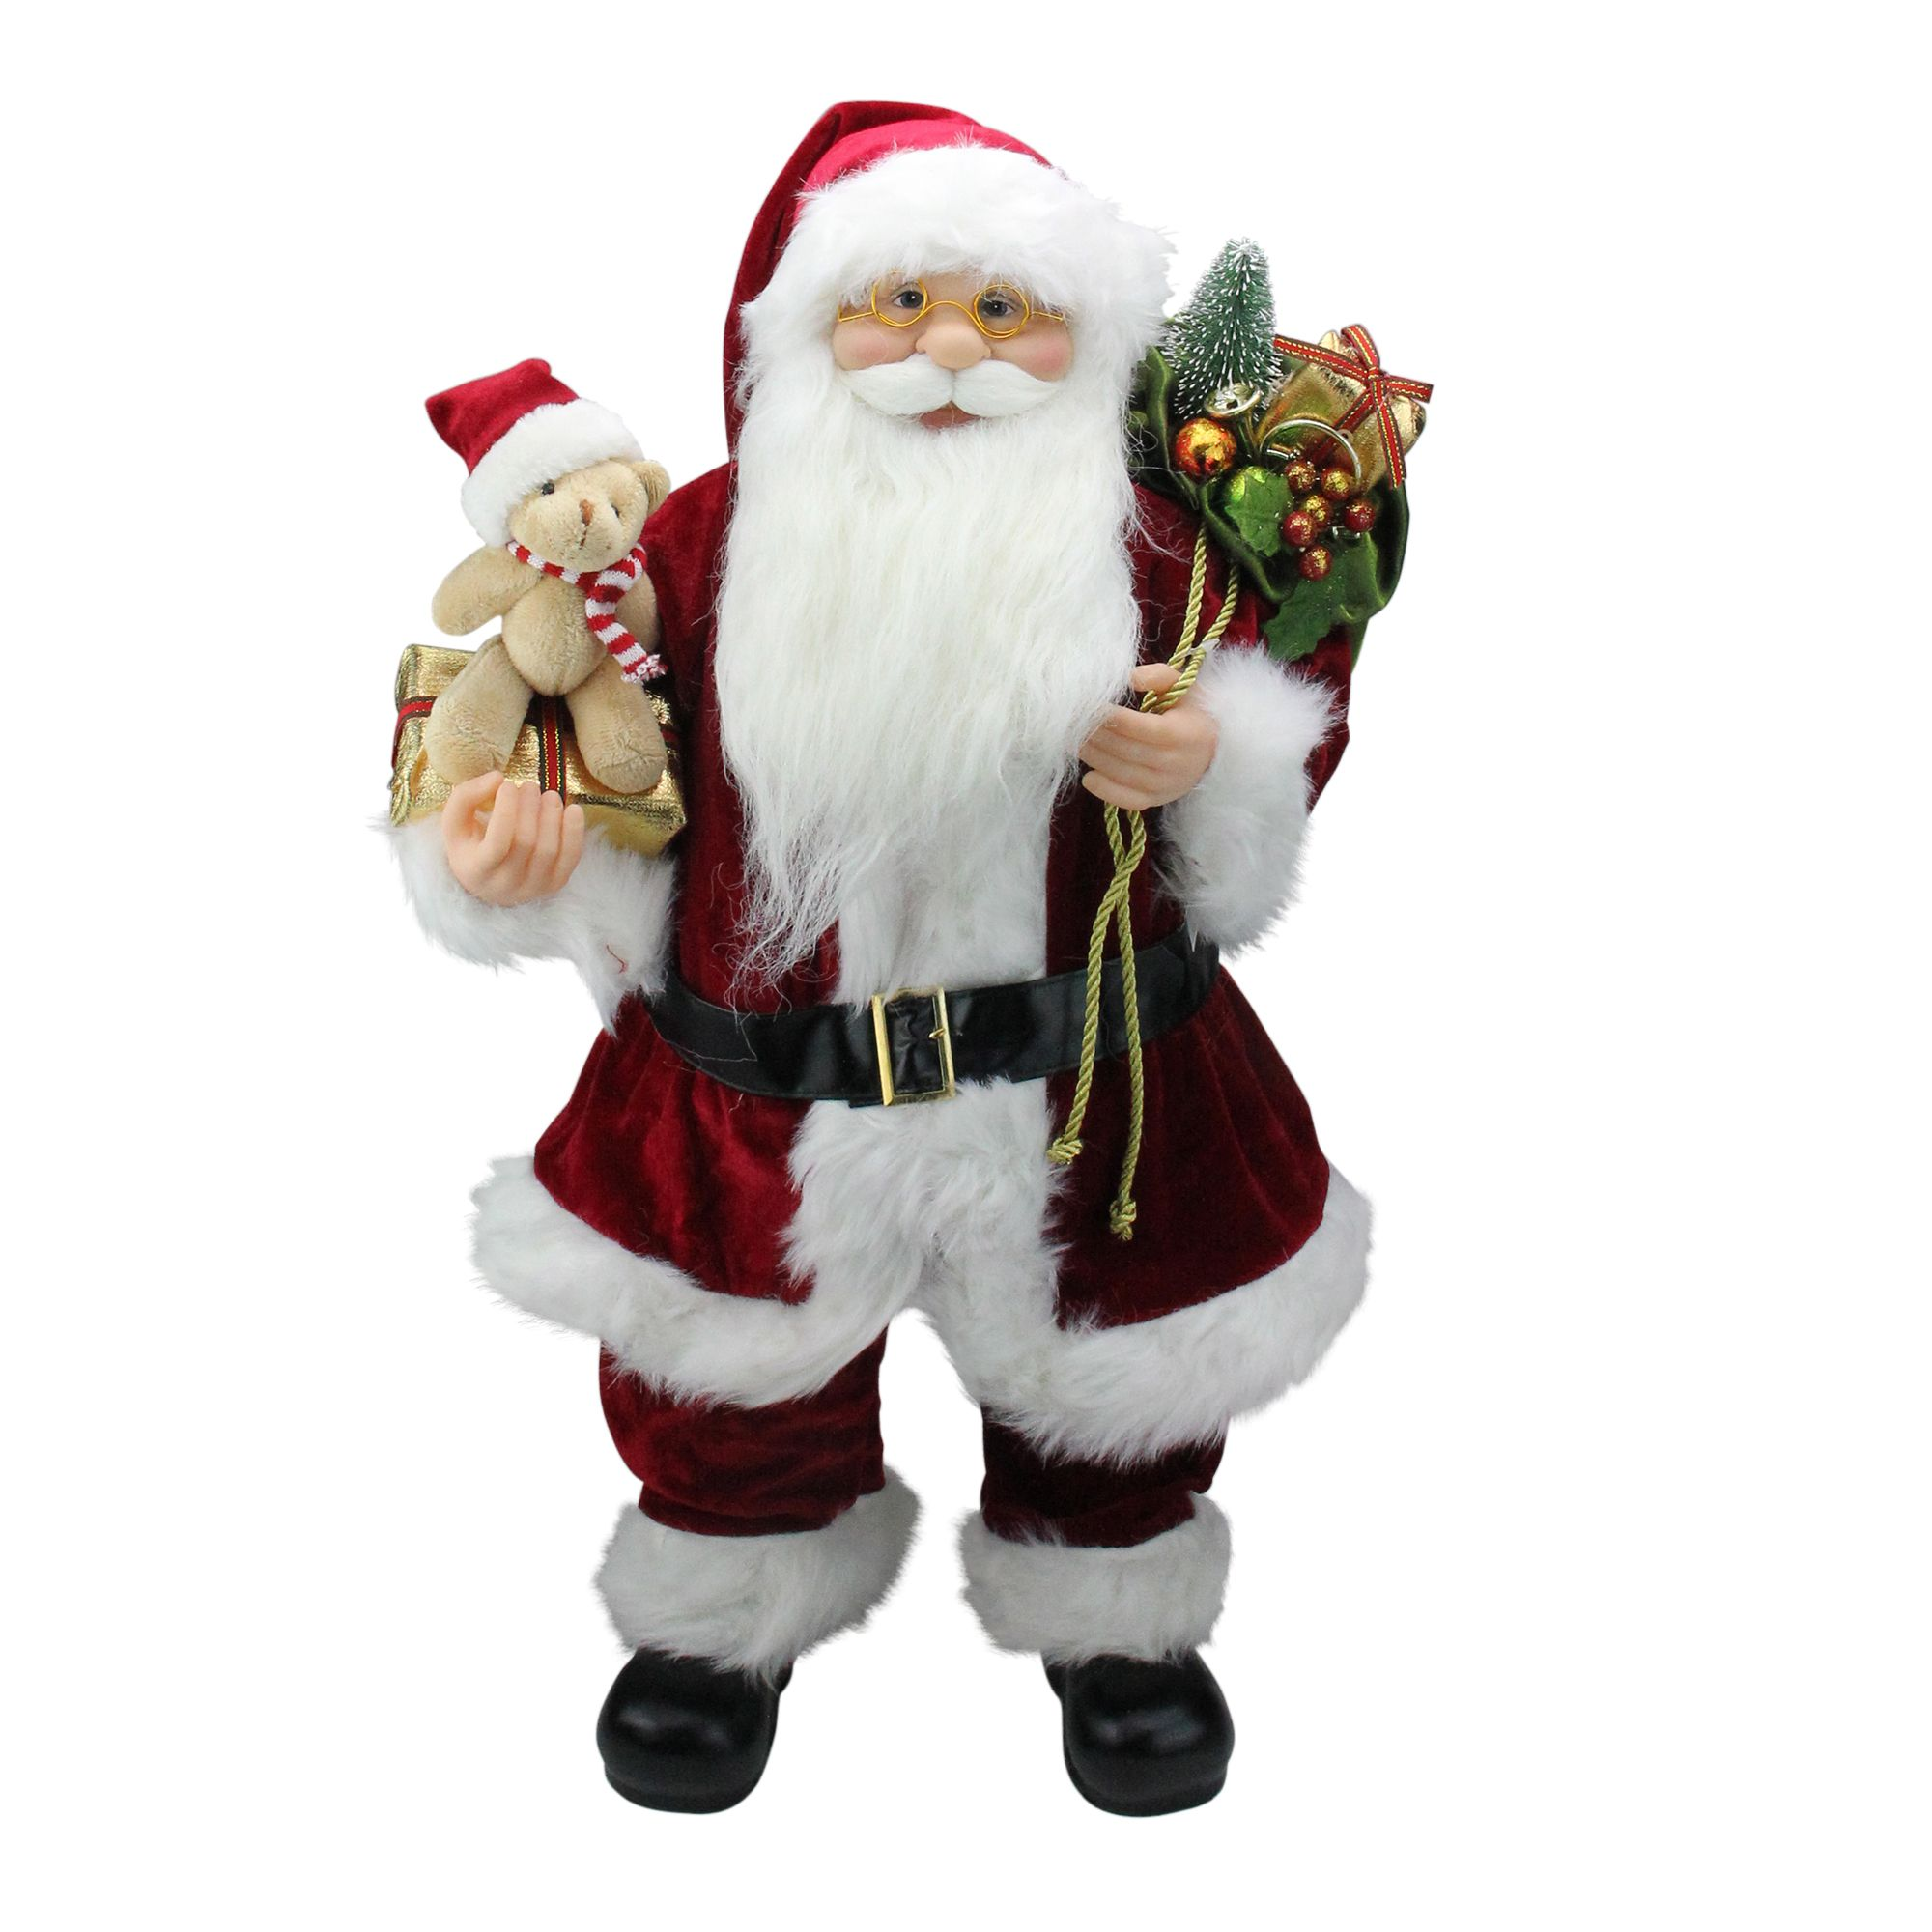 24 Traditional Standing Santa Claus Christmas Figure With Teddy Bear And Gift Bag Santa Claus Santa Claus Figure Teddy Bear